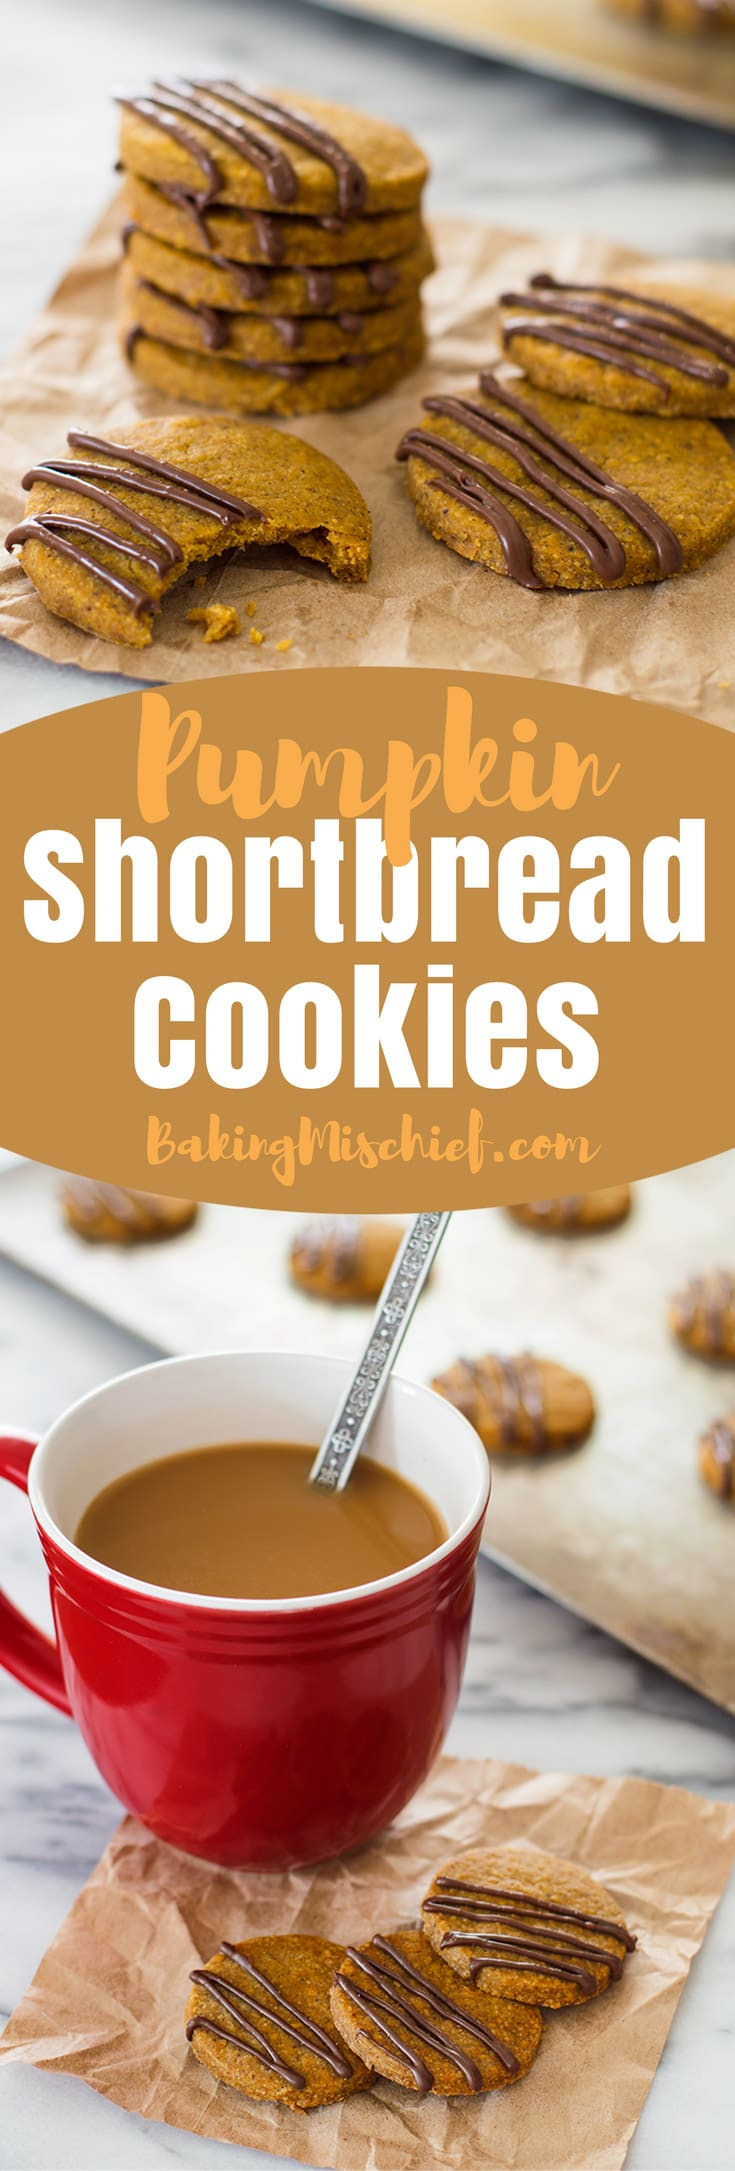 These Pumpkin Shortbread Cookies made with browned butter and pumpkin puree are lightly spiced, the perfect combo of crunchy and crumbly, and full of pumpkin flavor. Recipe includes nutritional information. From BakingMischief.com